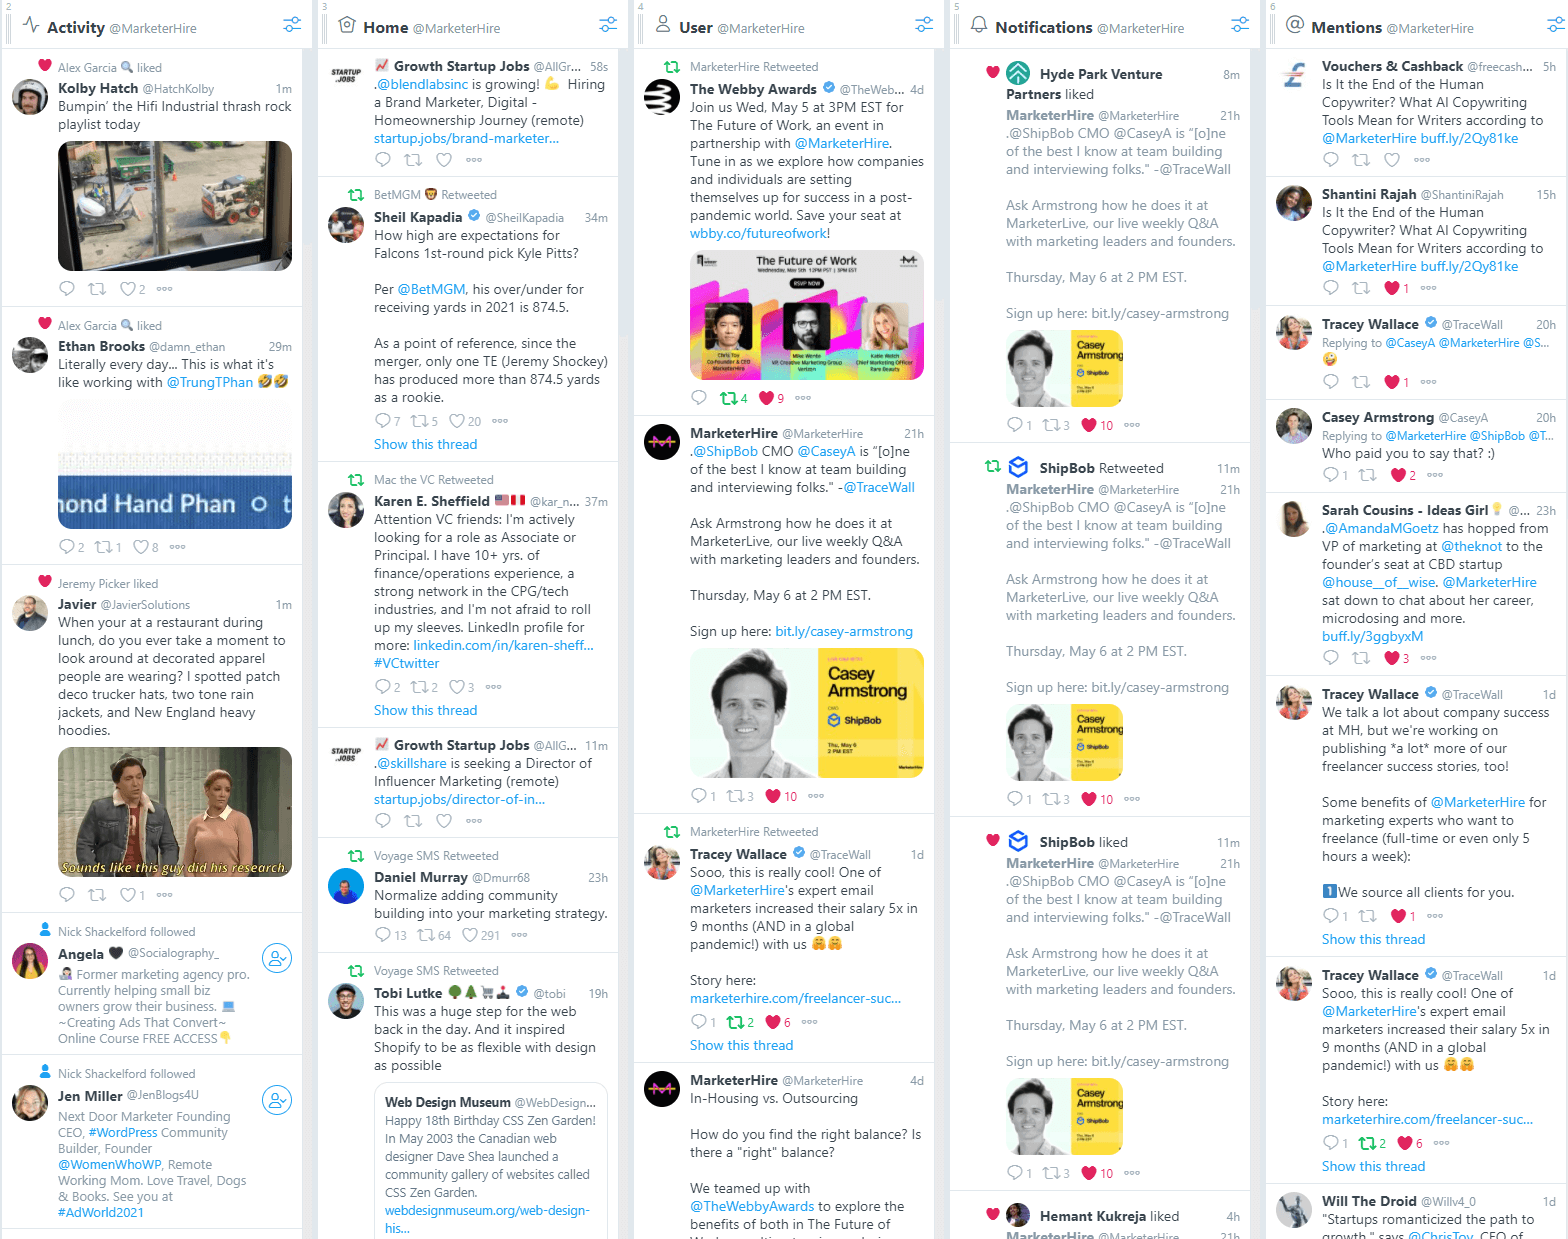 TweetDeck - free tool for Twitter that lets you schedule content, respond, and discover